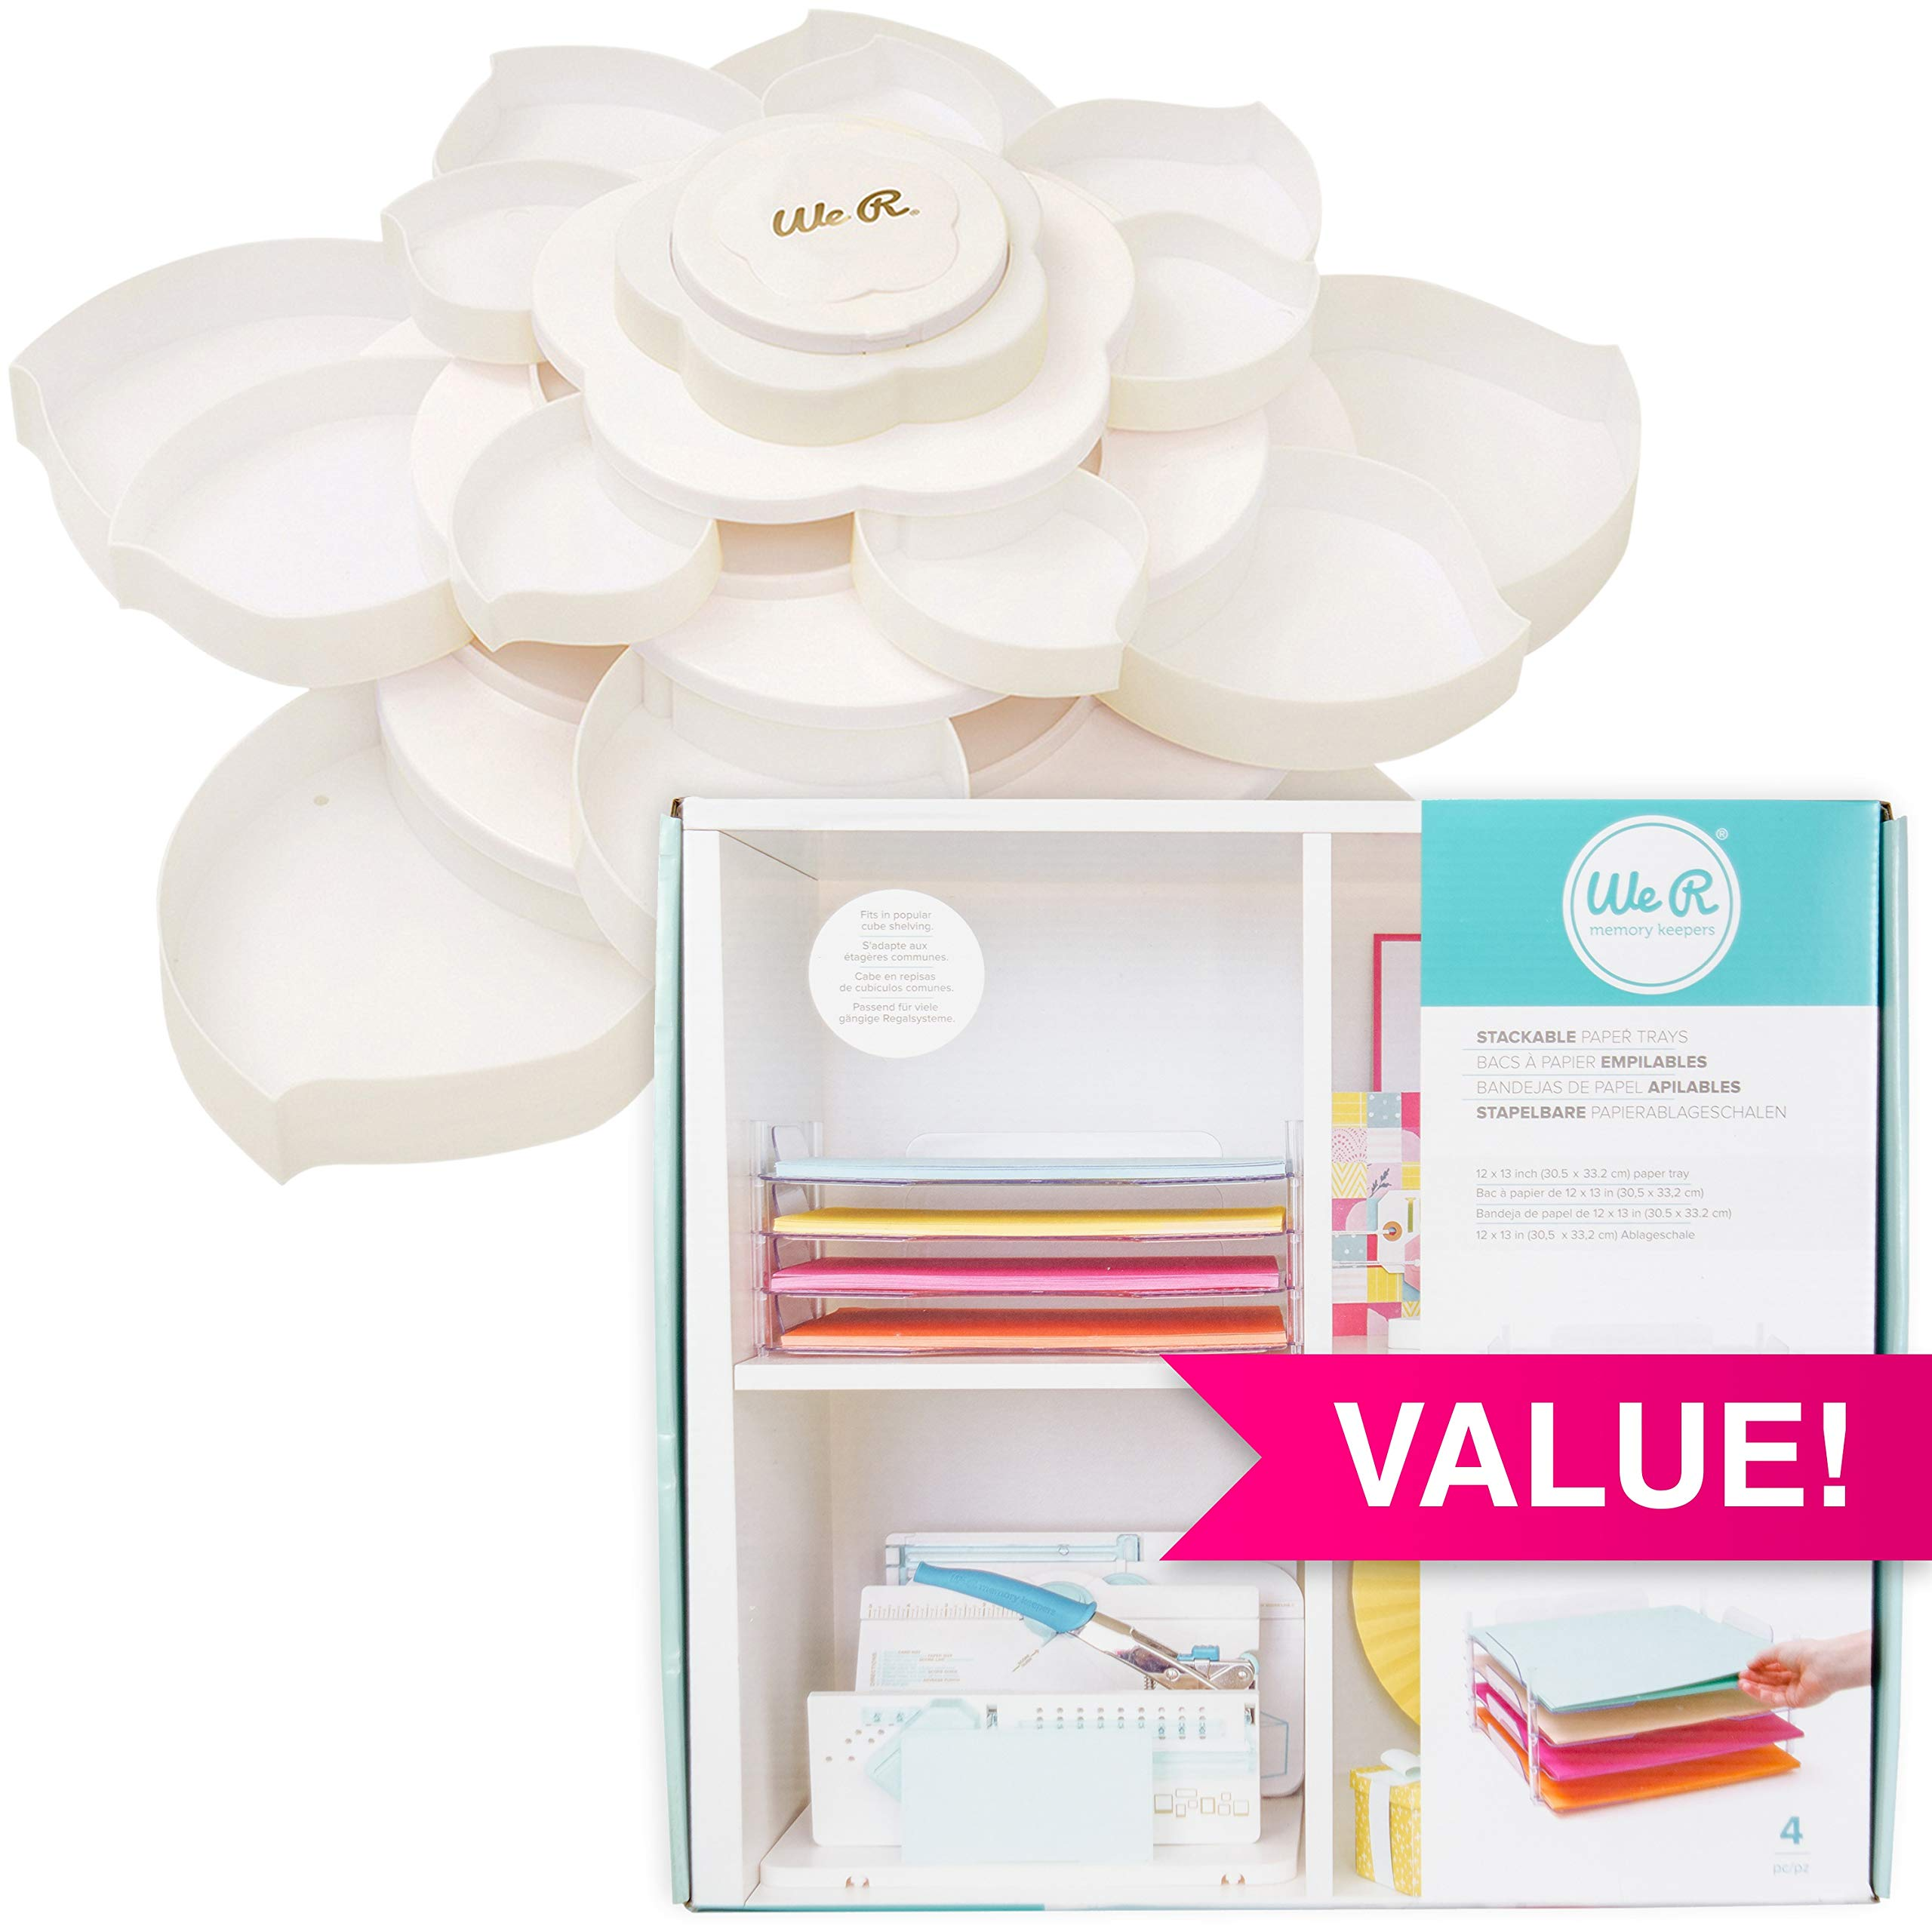 We R Memory Keepers 546 Desktop Bundle with Paper Trays & Embellishment Storage, White